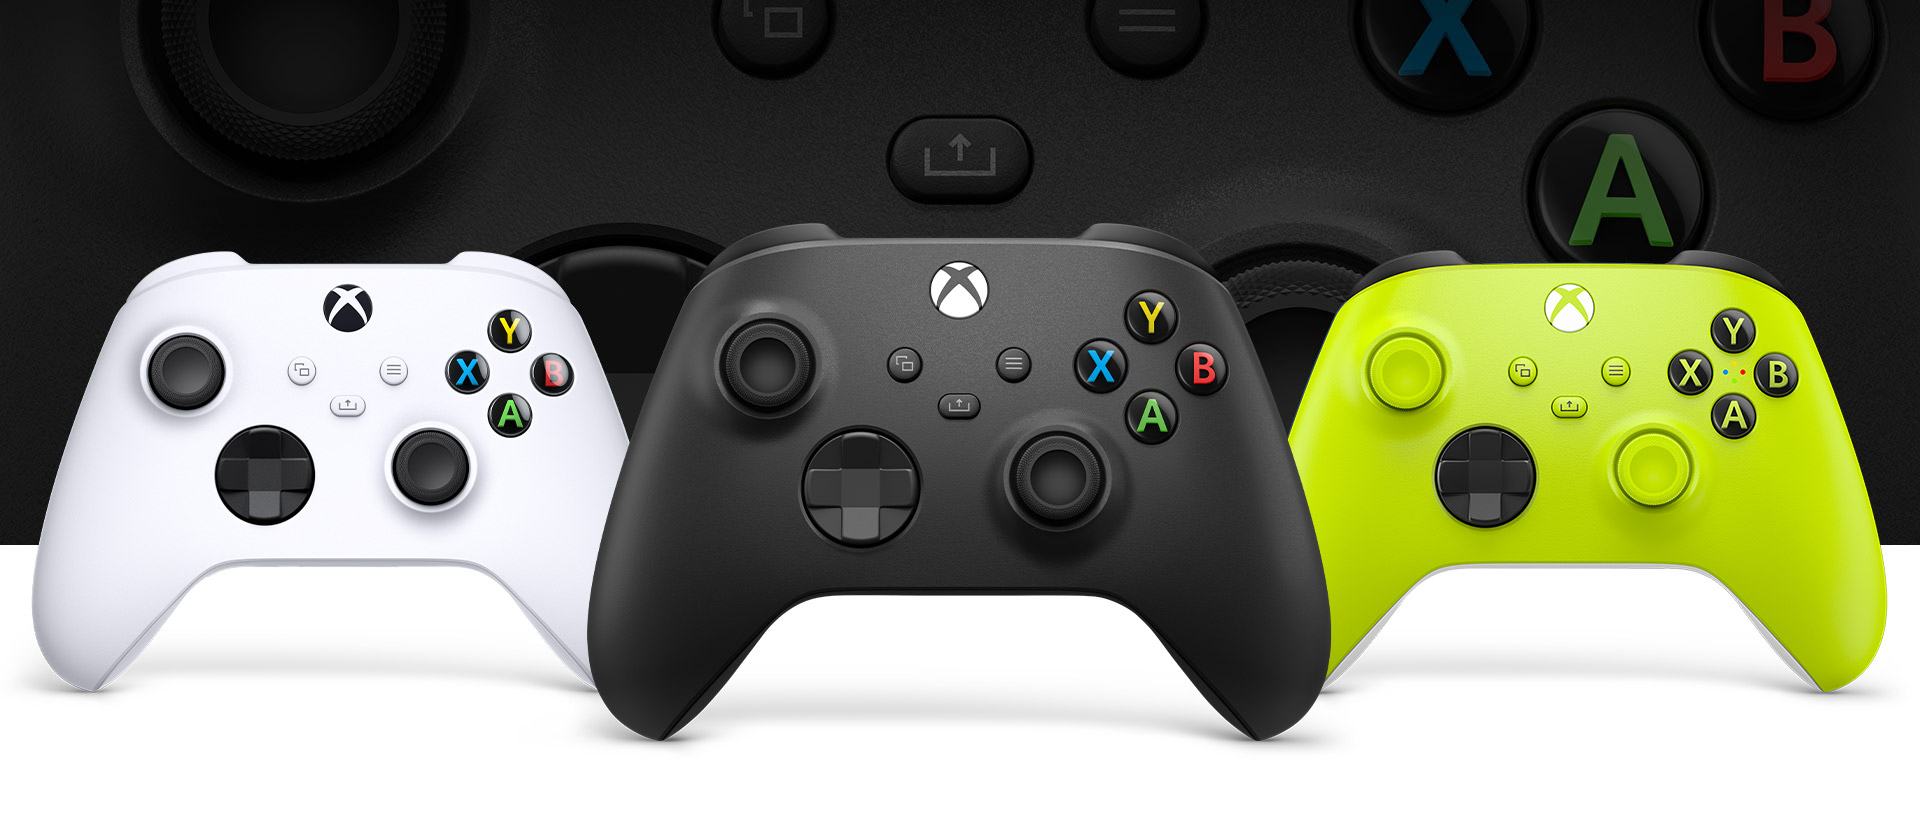 Microsoft Xbox Wireless Controller: best Xbox controller for PC